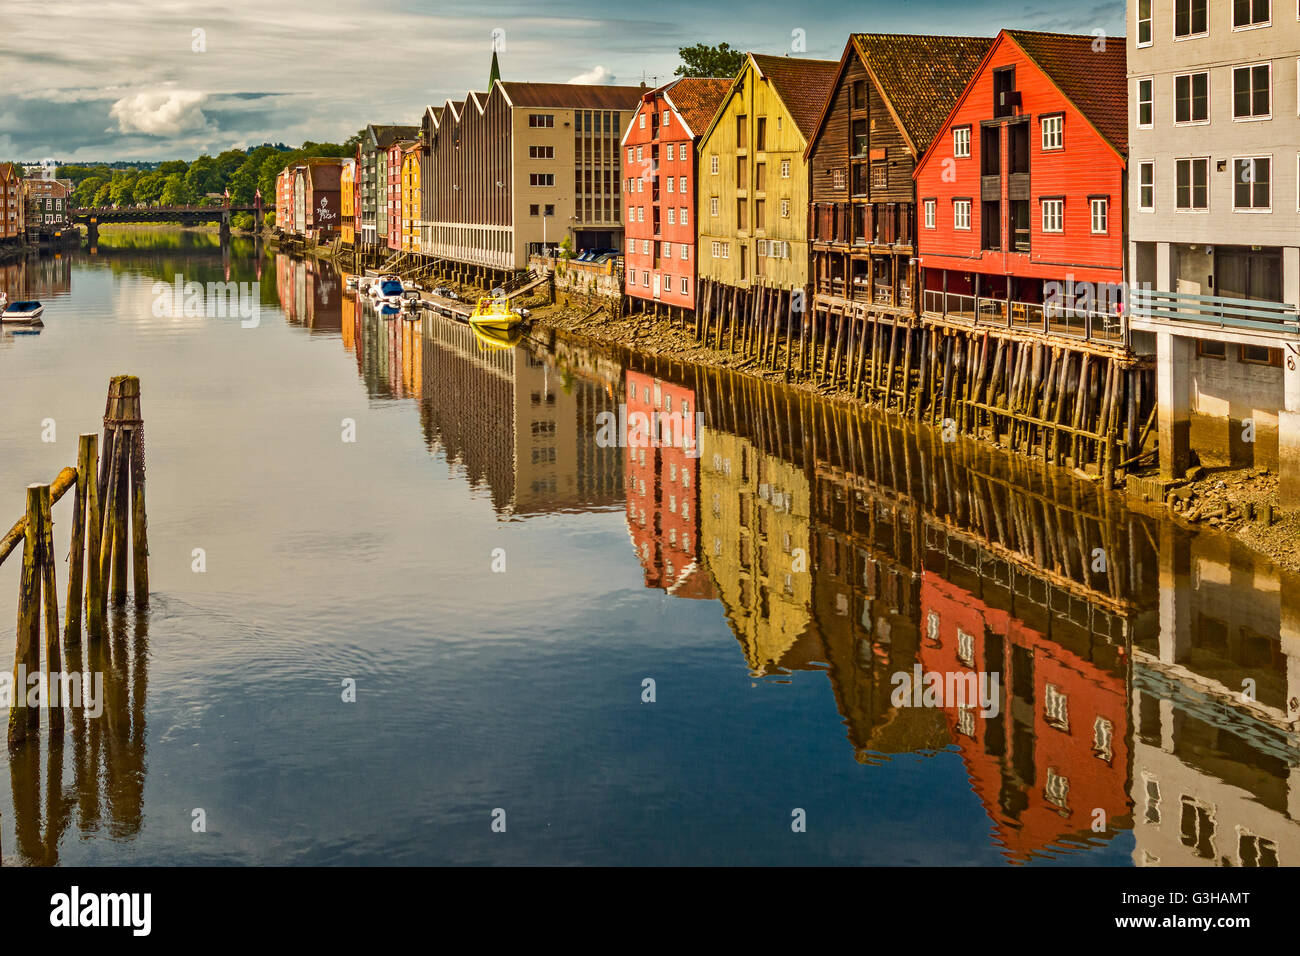 Wharves on the Nidelva River in Trondheim Norway - Stock Image